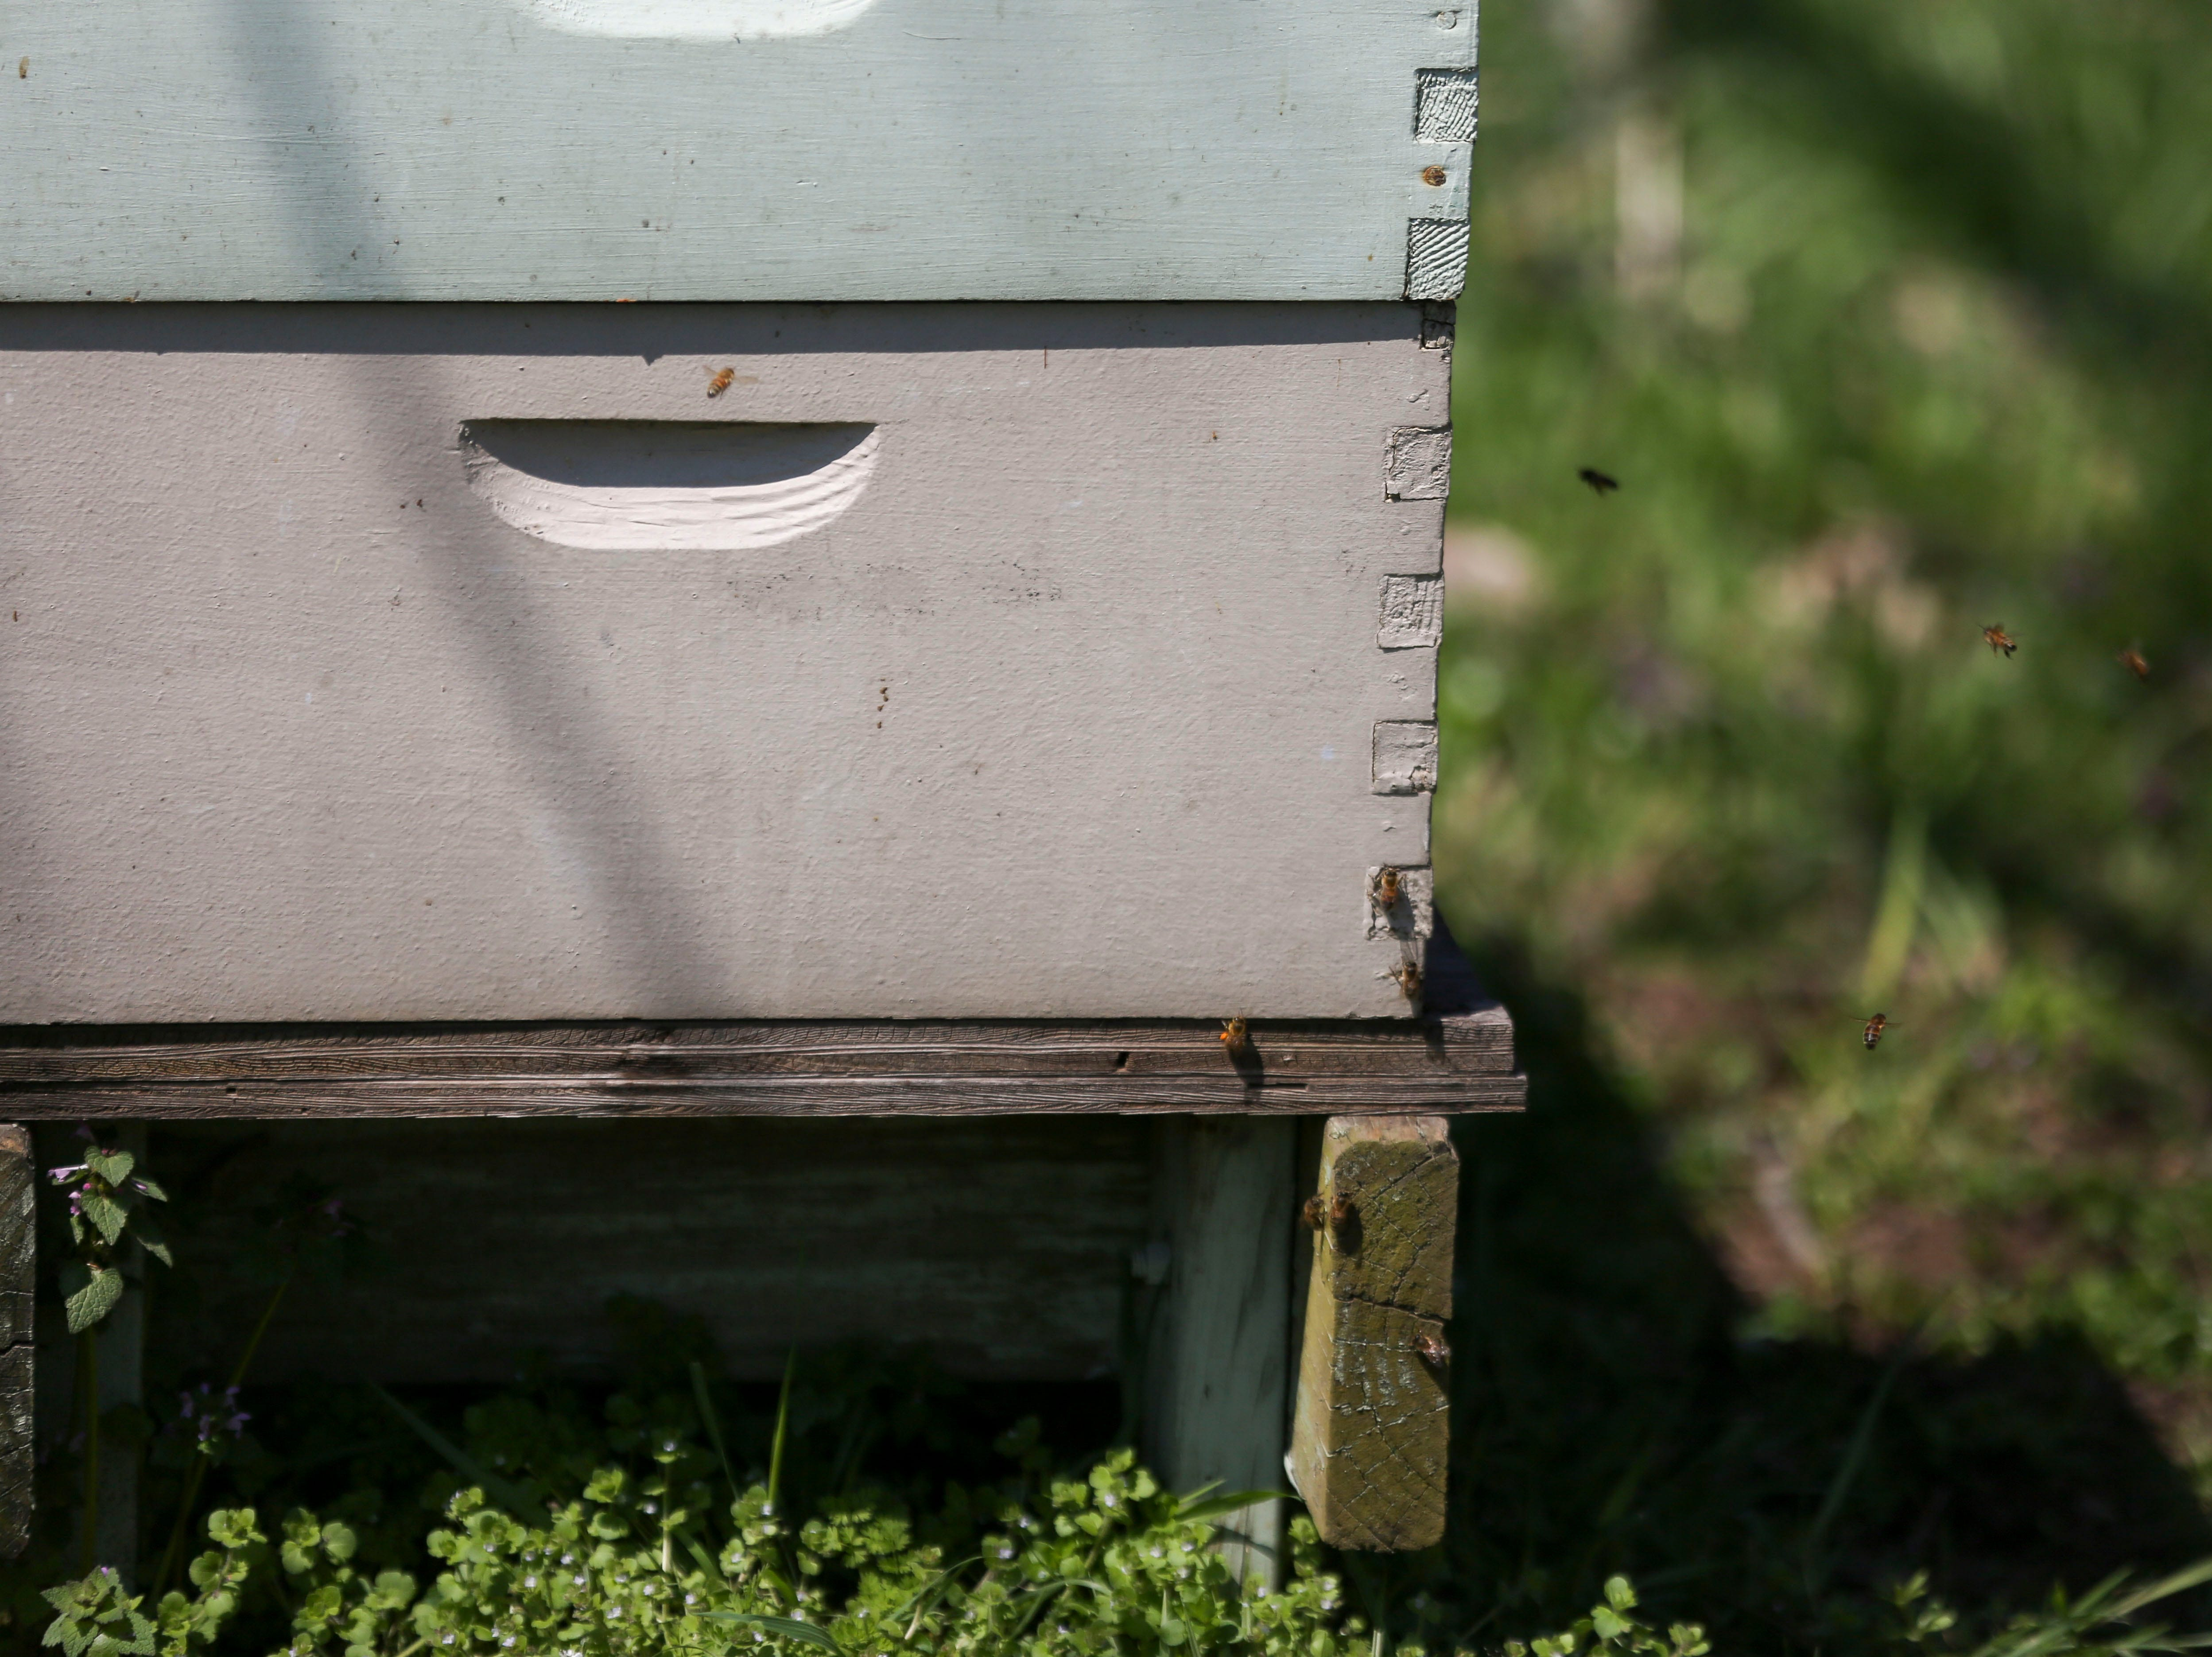 Bees fly around hives in the Hosey Honey bee yard in Midway, Ky. on Wednesday, April 3, 2019. Hosey Honey is a small family run honey company, their Hosey's Queen's Triple Crown honey is used in the sweetener in the $1,000 Woodford Reserve Kentucky Derby mint julep.